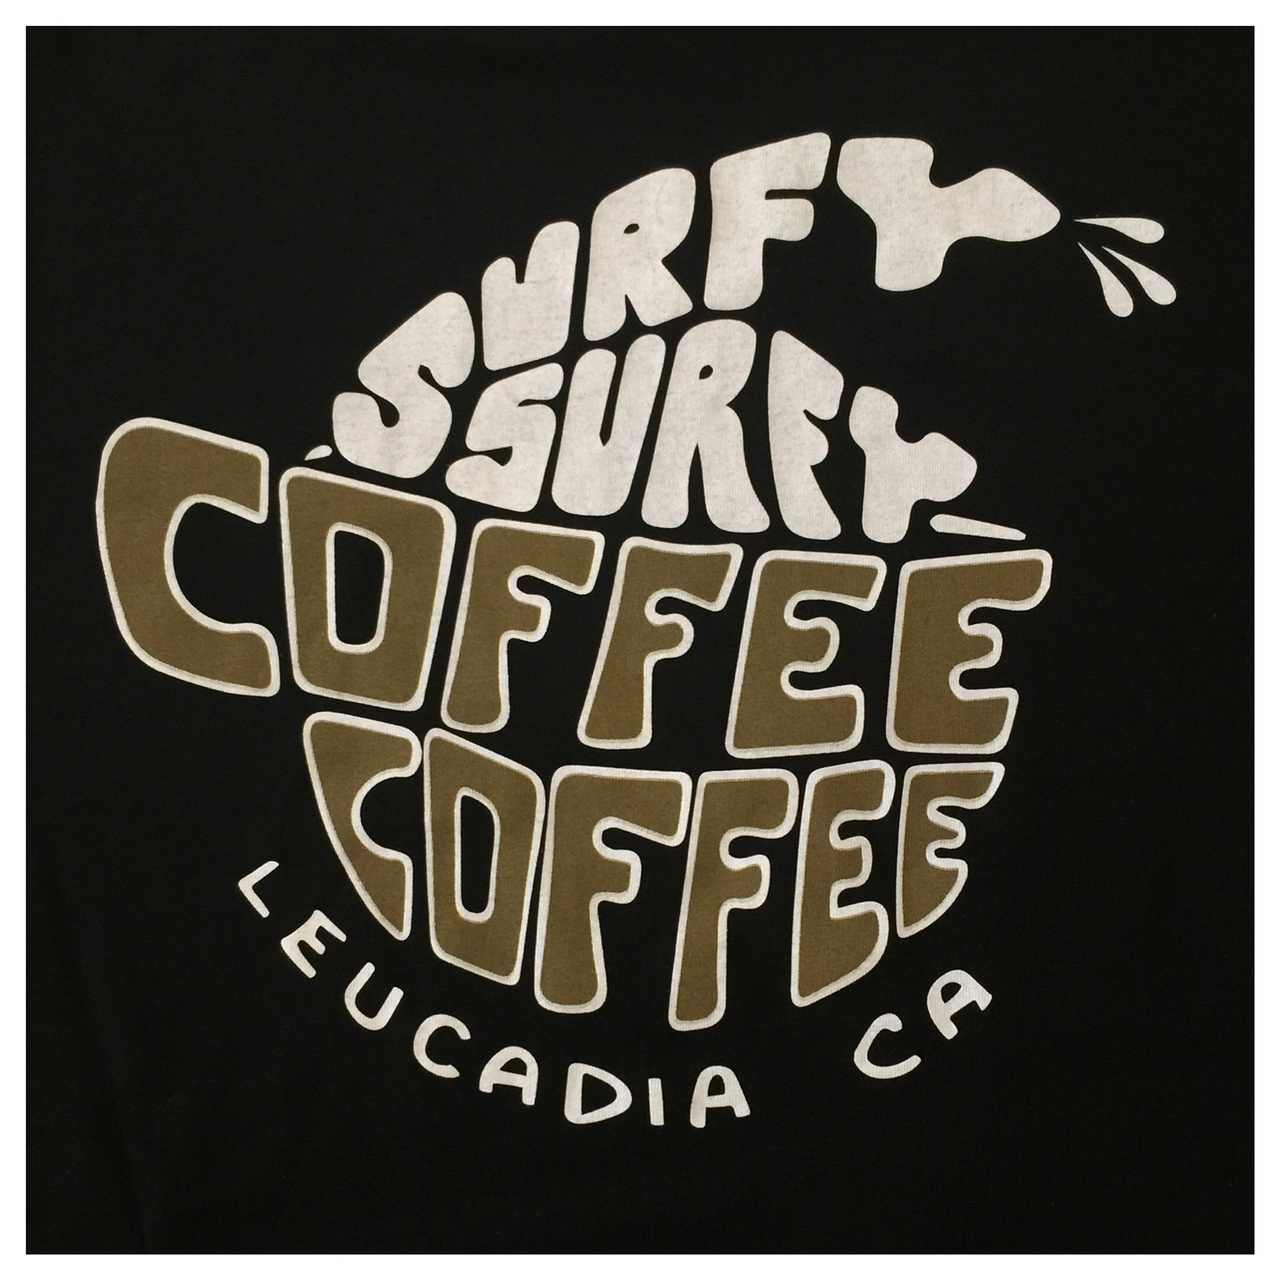 Coffee Coffee Surfy Surfy t-shirt